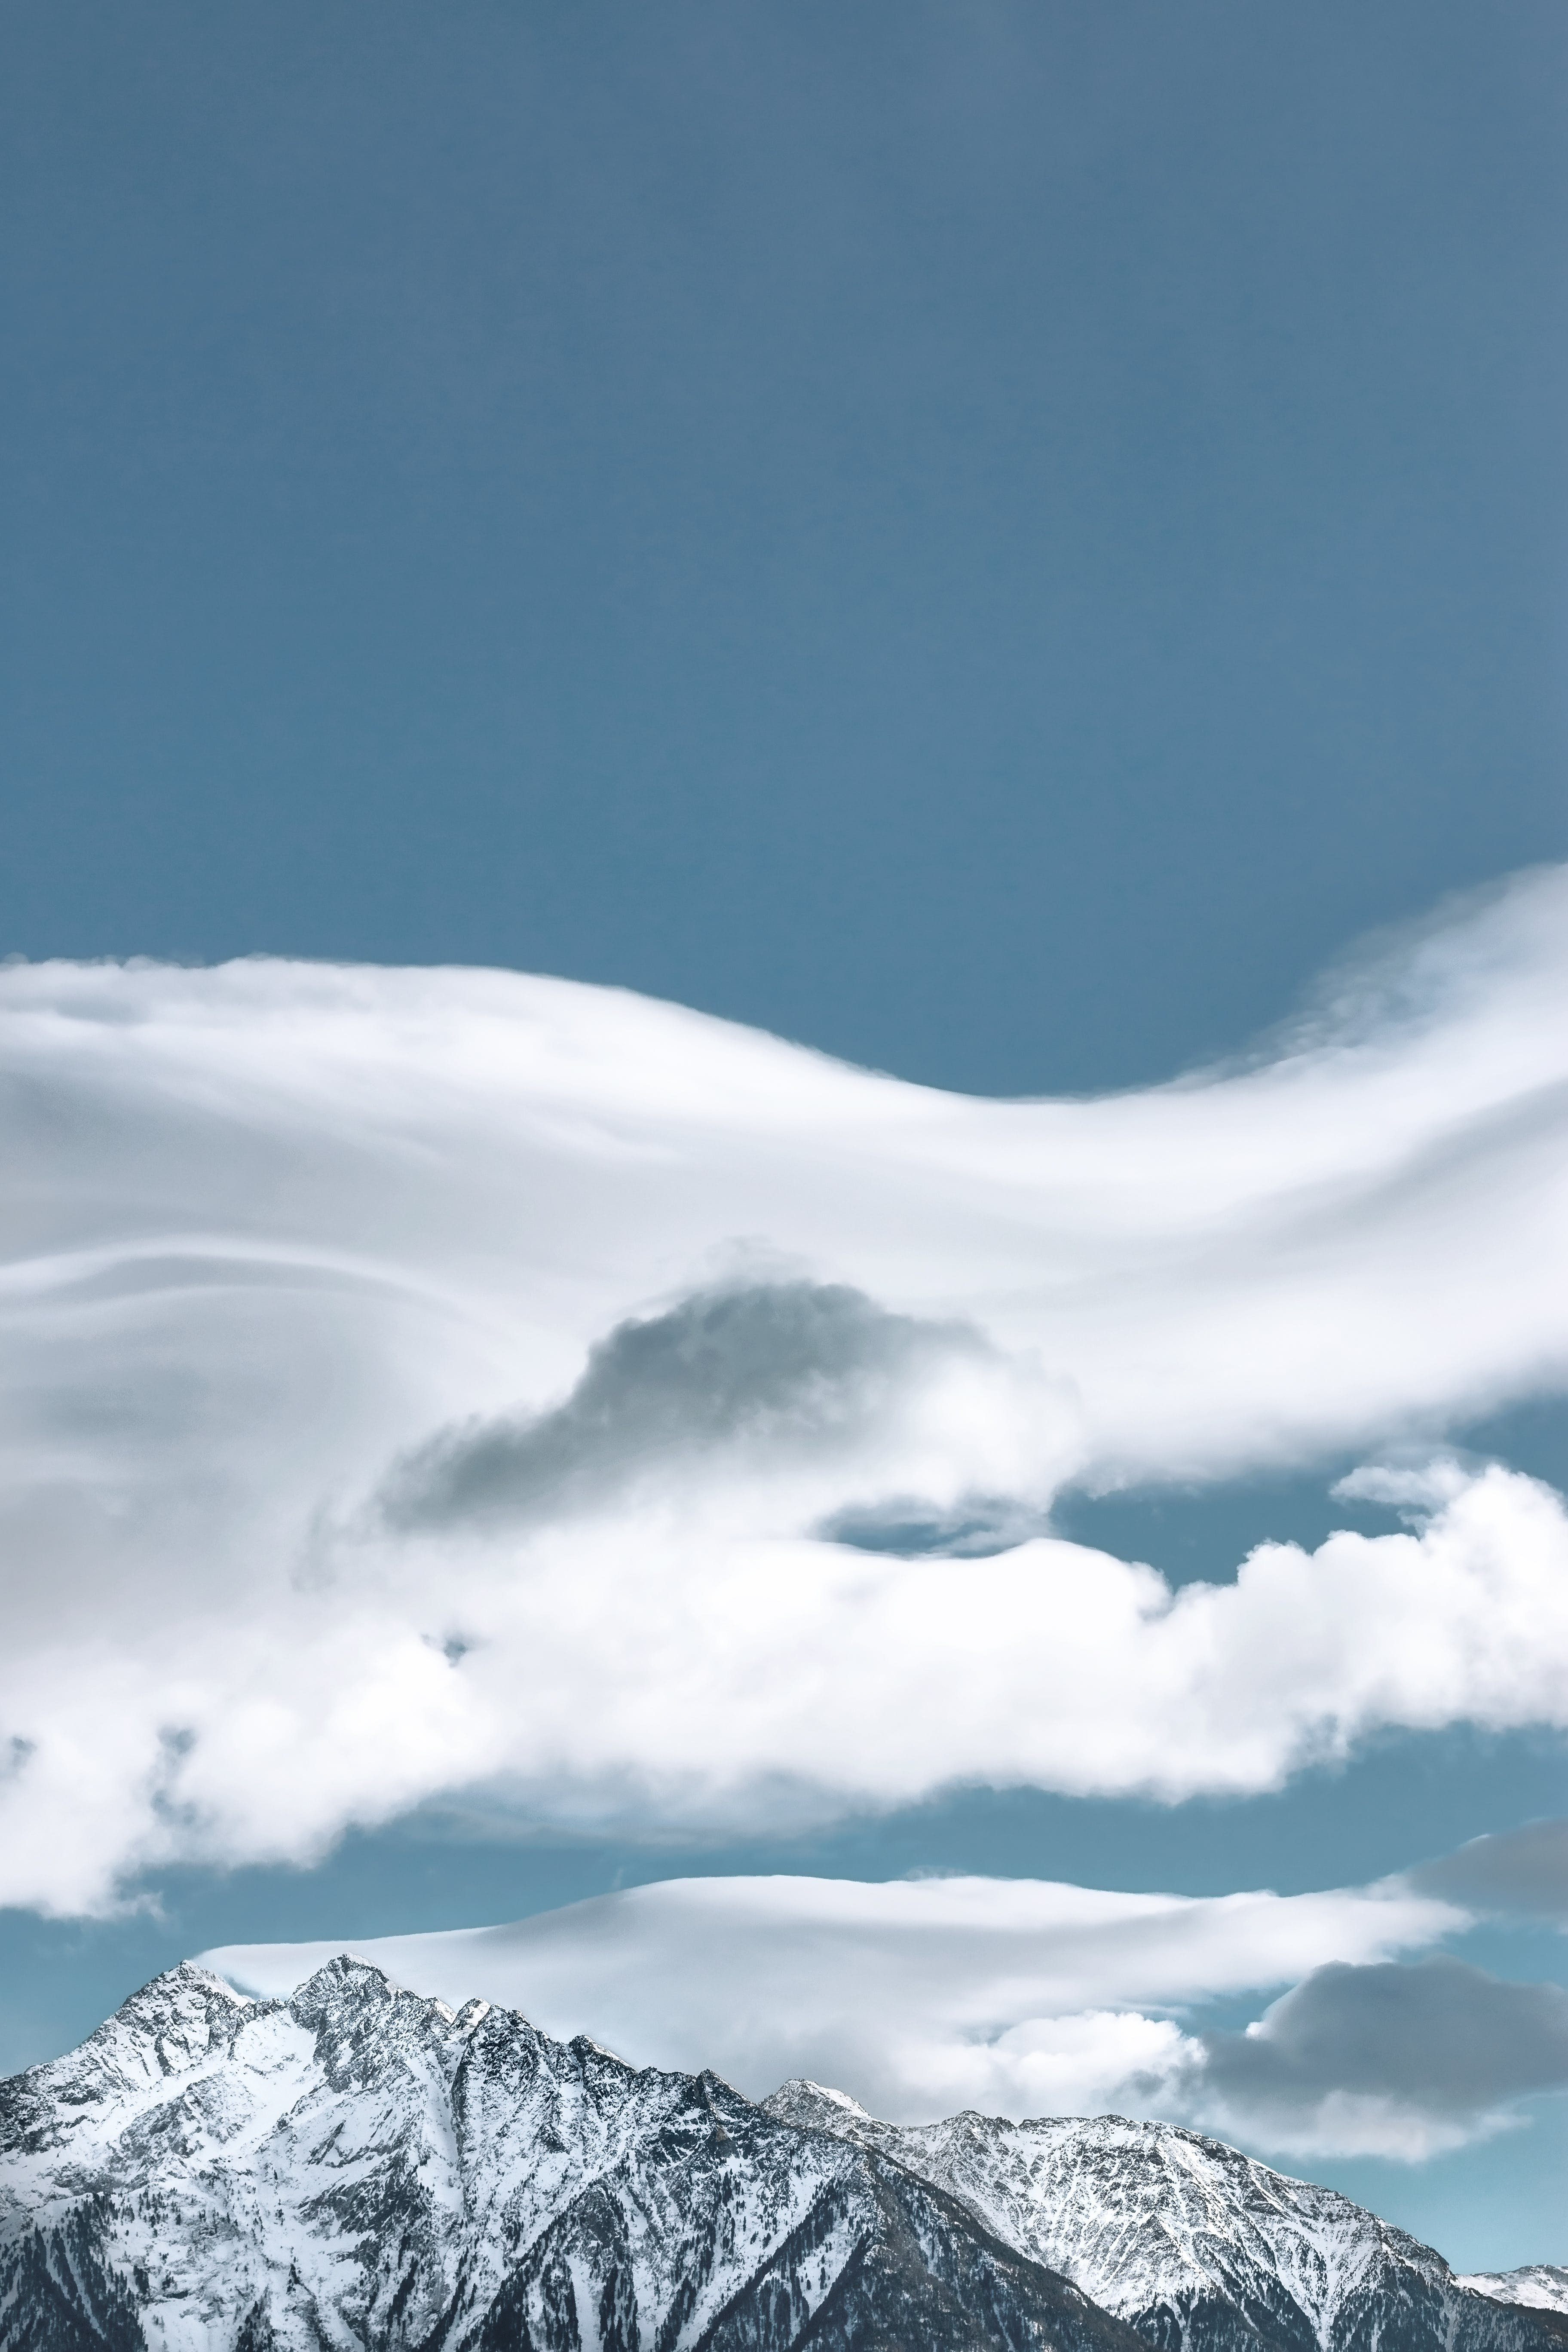 Cloud Formation Above Snow-capped Mountain